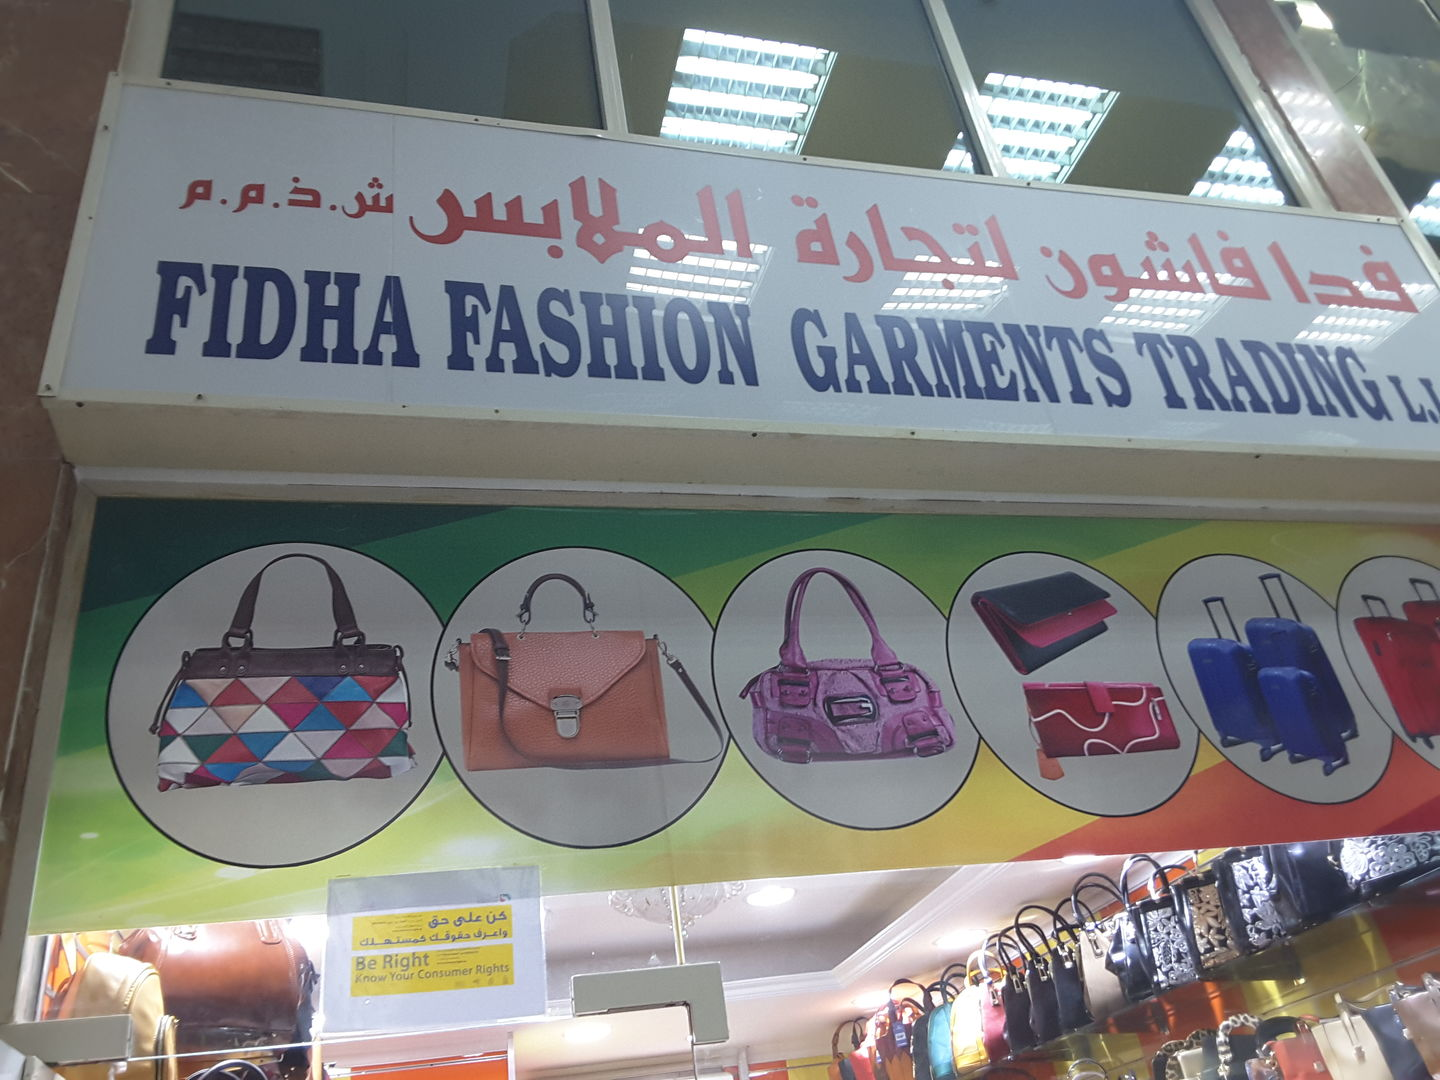 HiDubai-business-fidha-fashion-garments-shopping-luggage-travel-accessories-baniyas-square-dubai-2